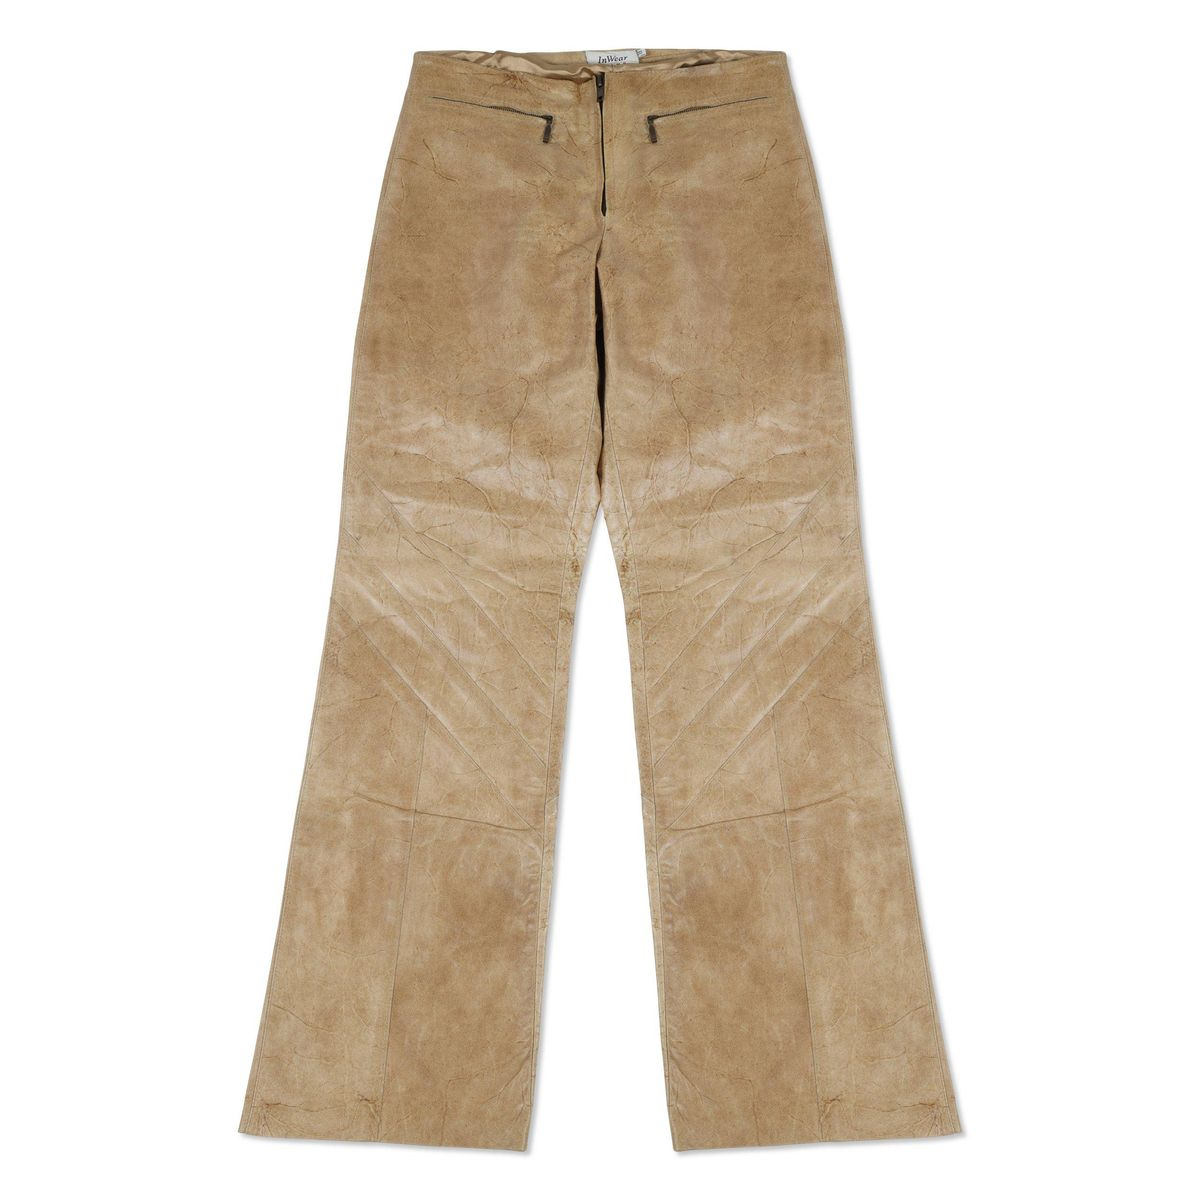 Vintage Brown Leather Pants with Zipper